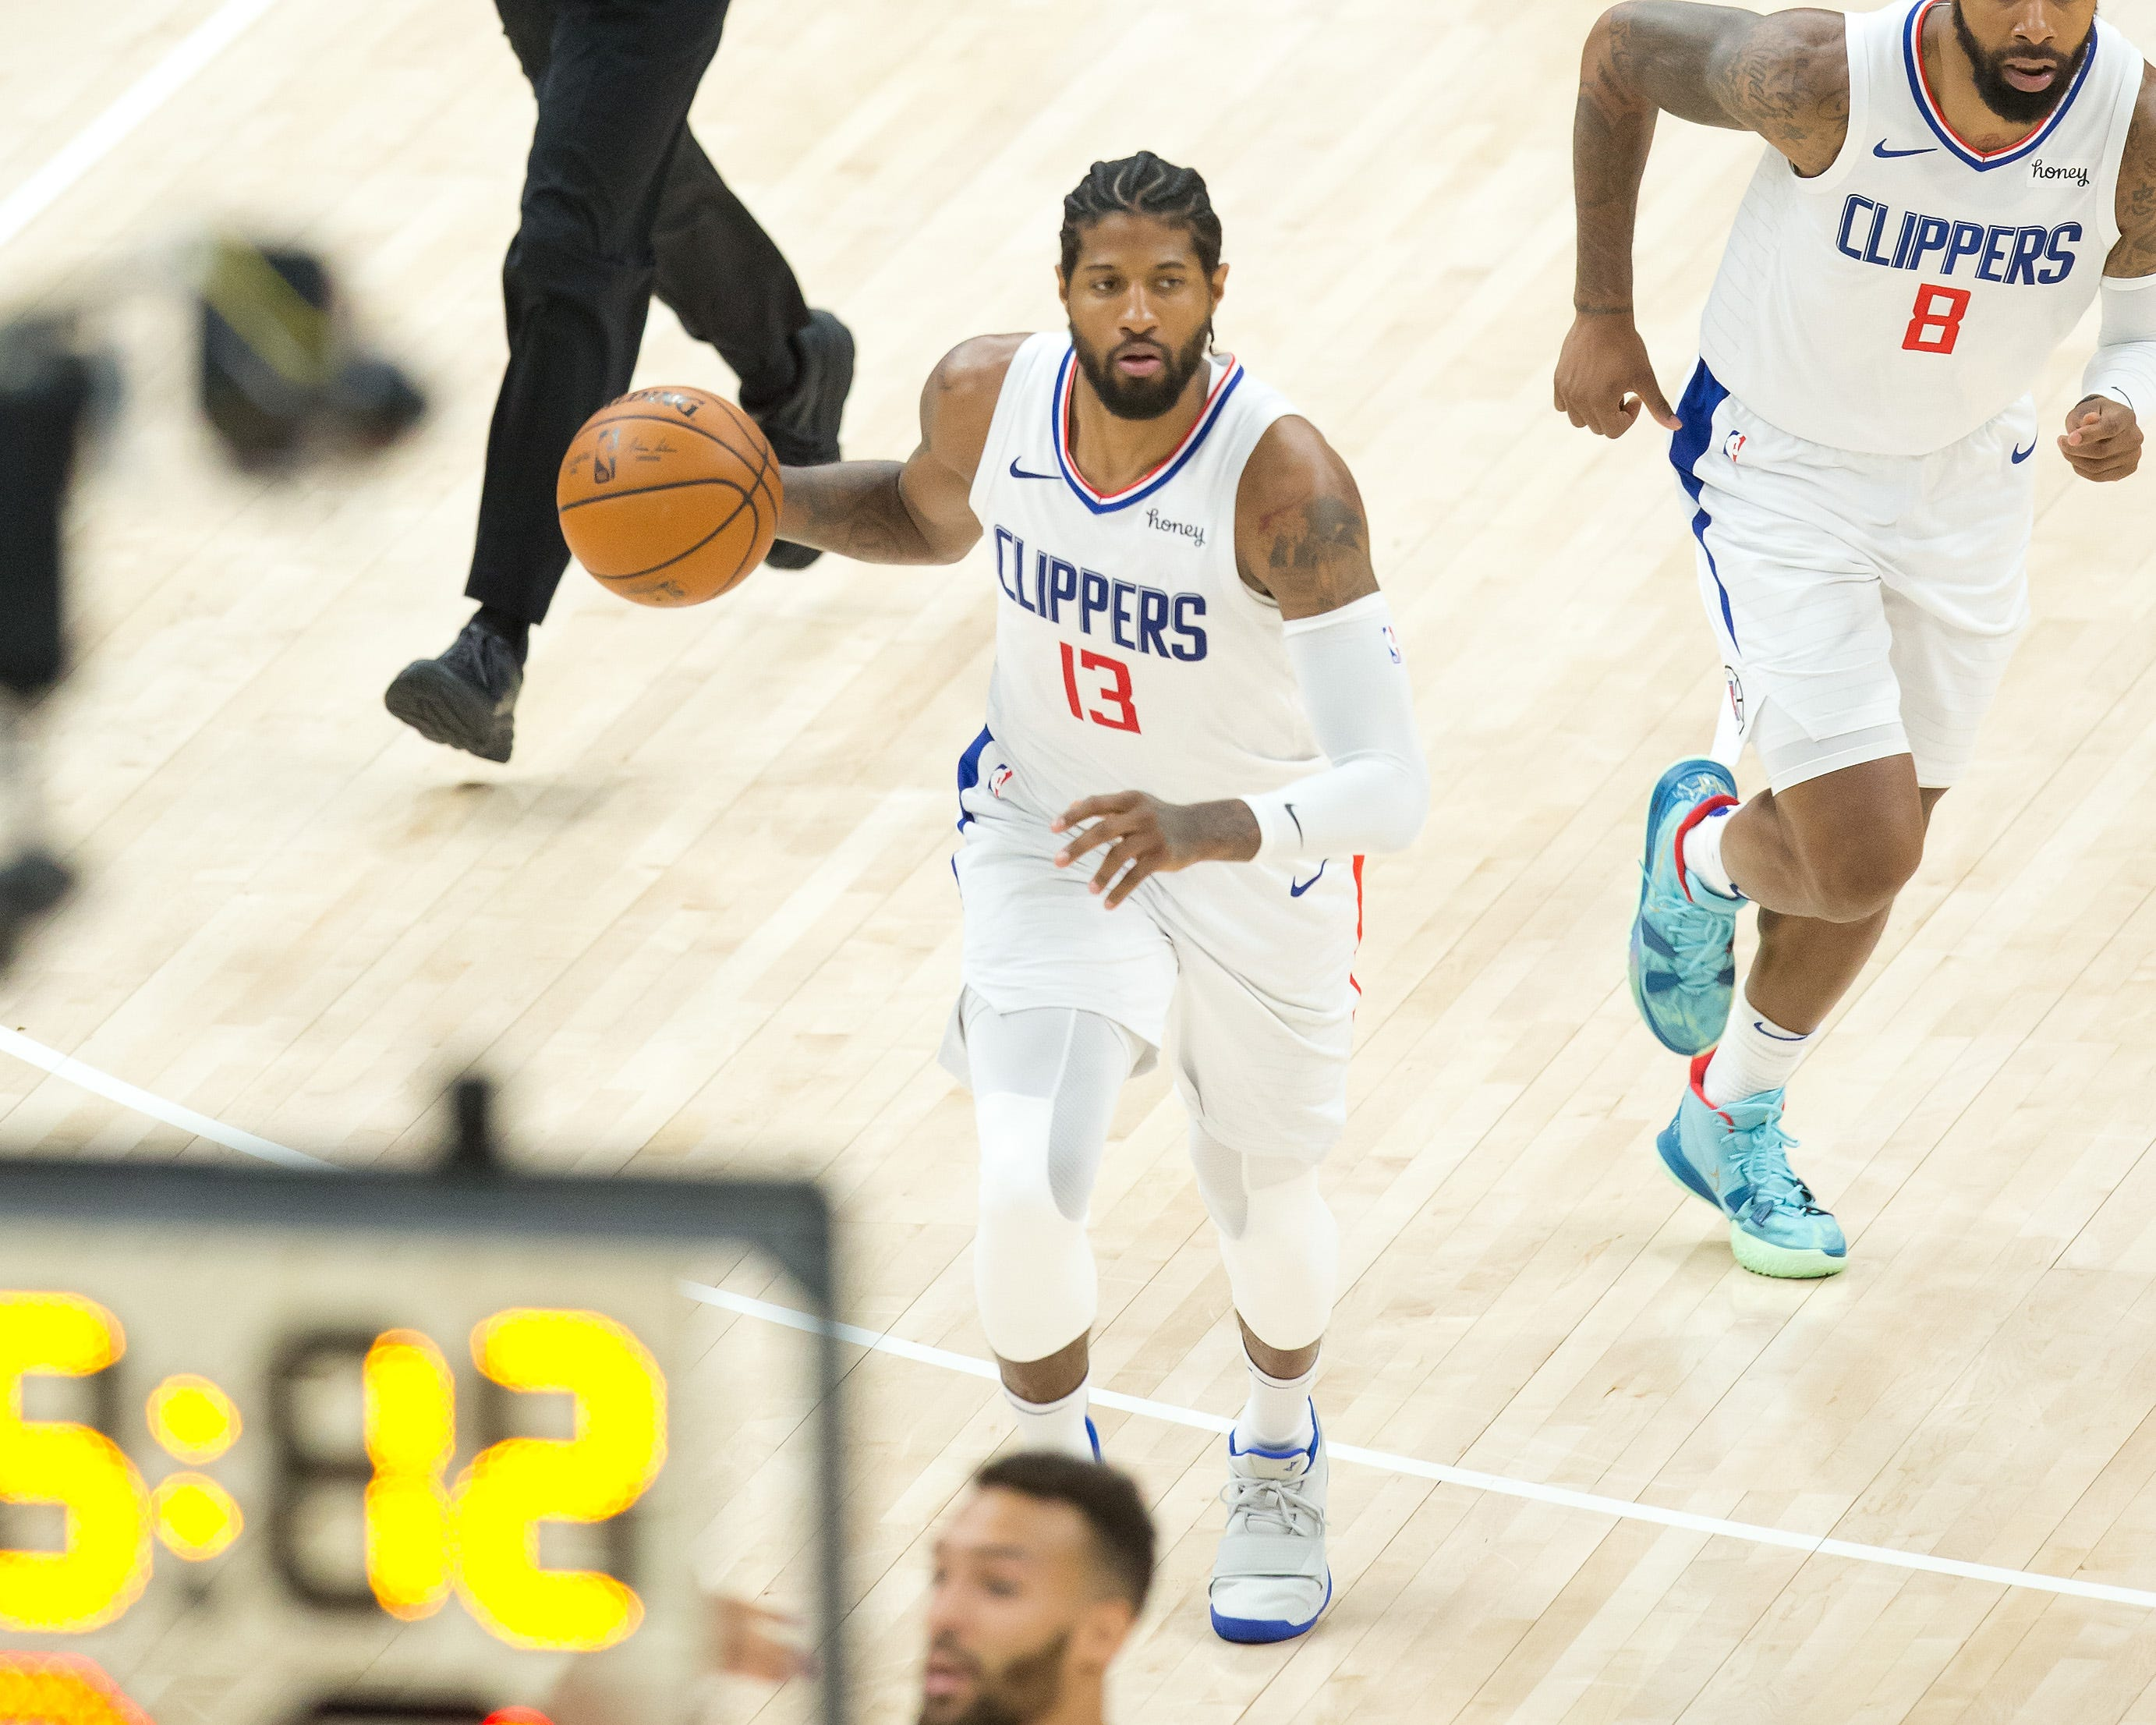 'I got us': How Clippers' Paul George lived up to 'Playoff P' in Game 5 win over Jazz